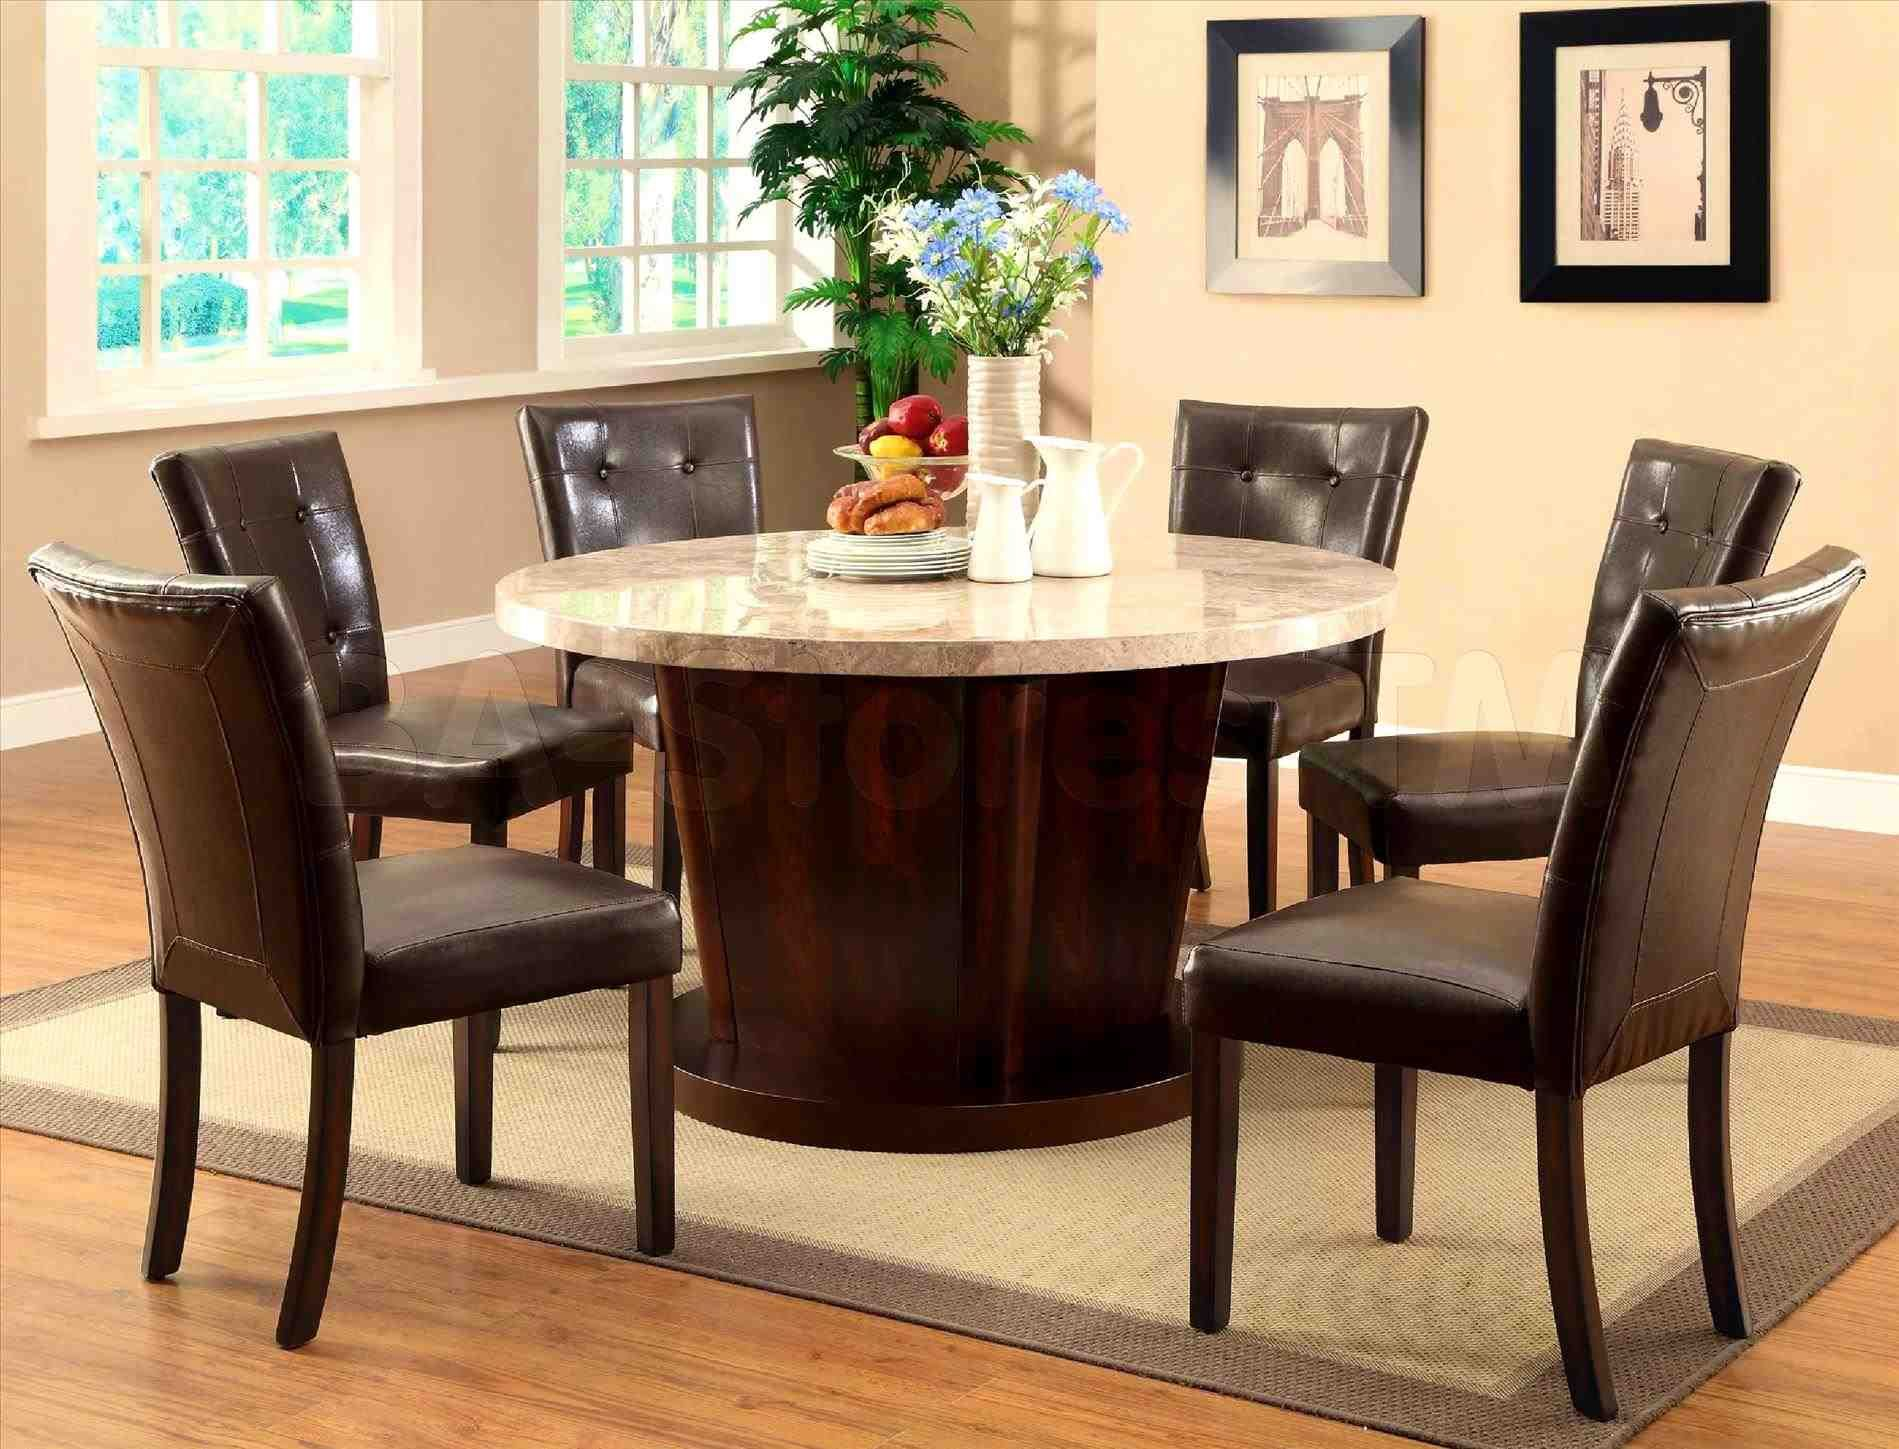 New Post round dining table for 6 dimensions | Decors Ideas ...